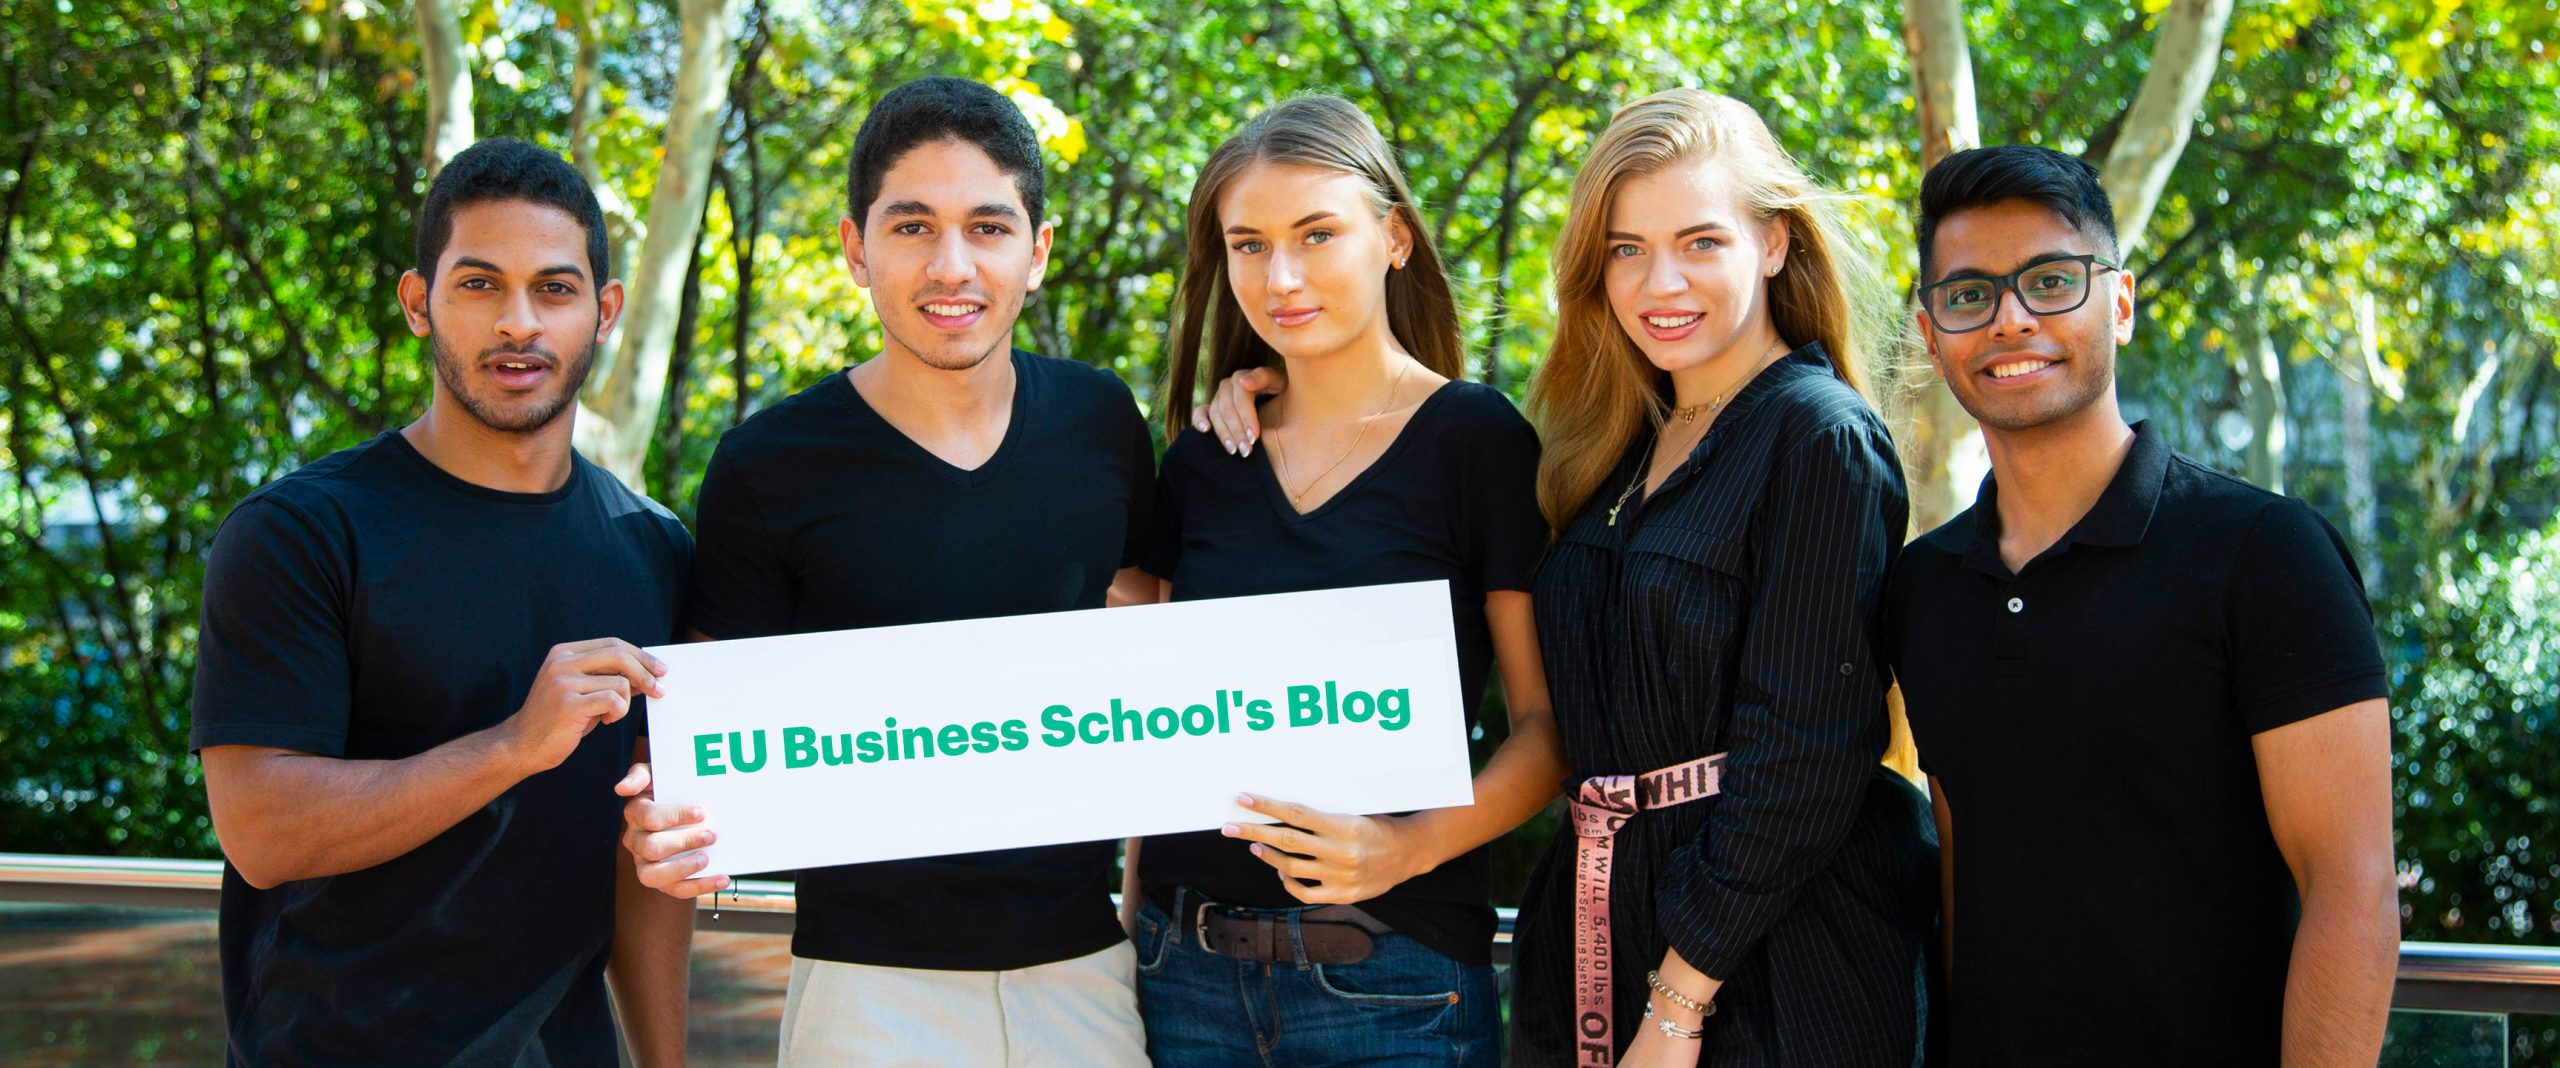 eu business school blog